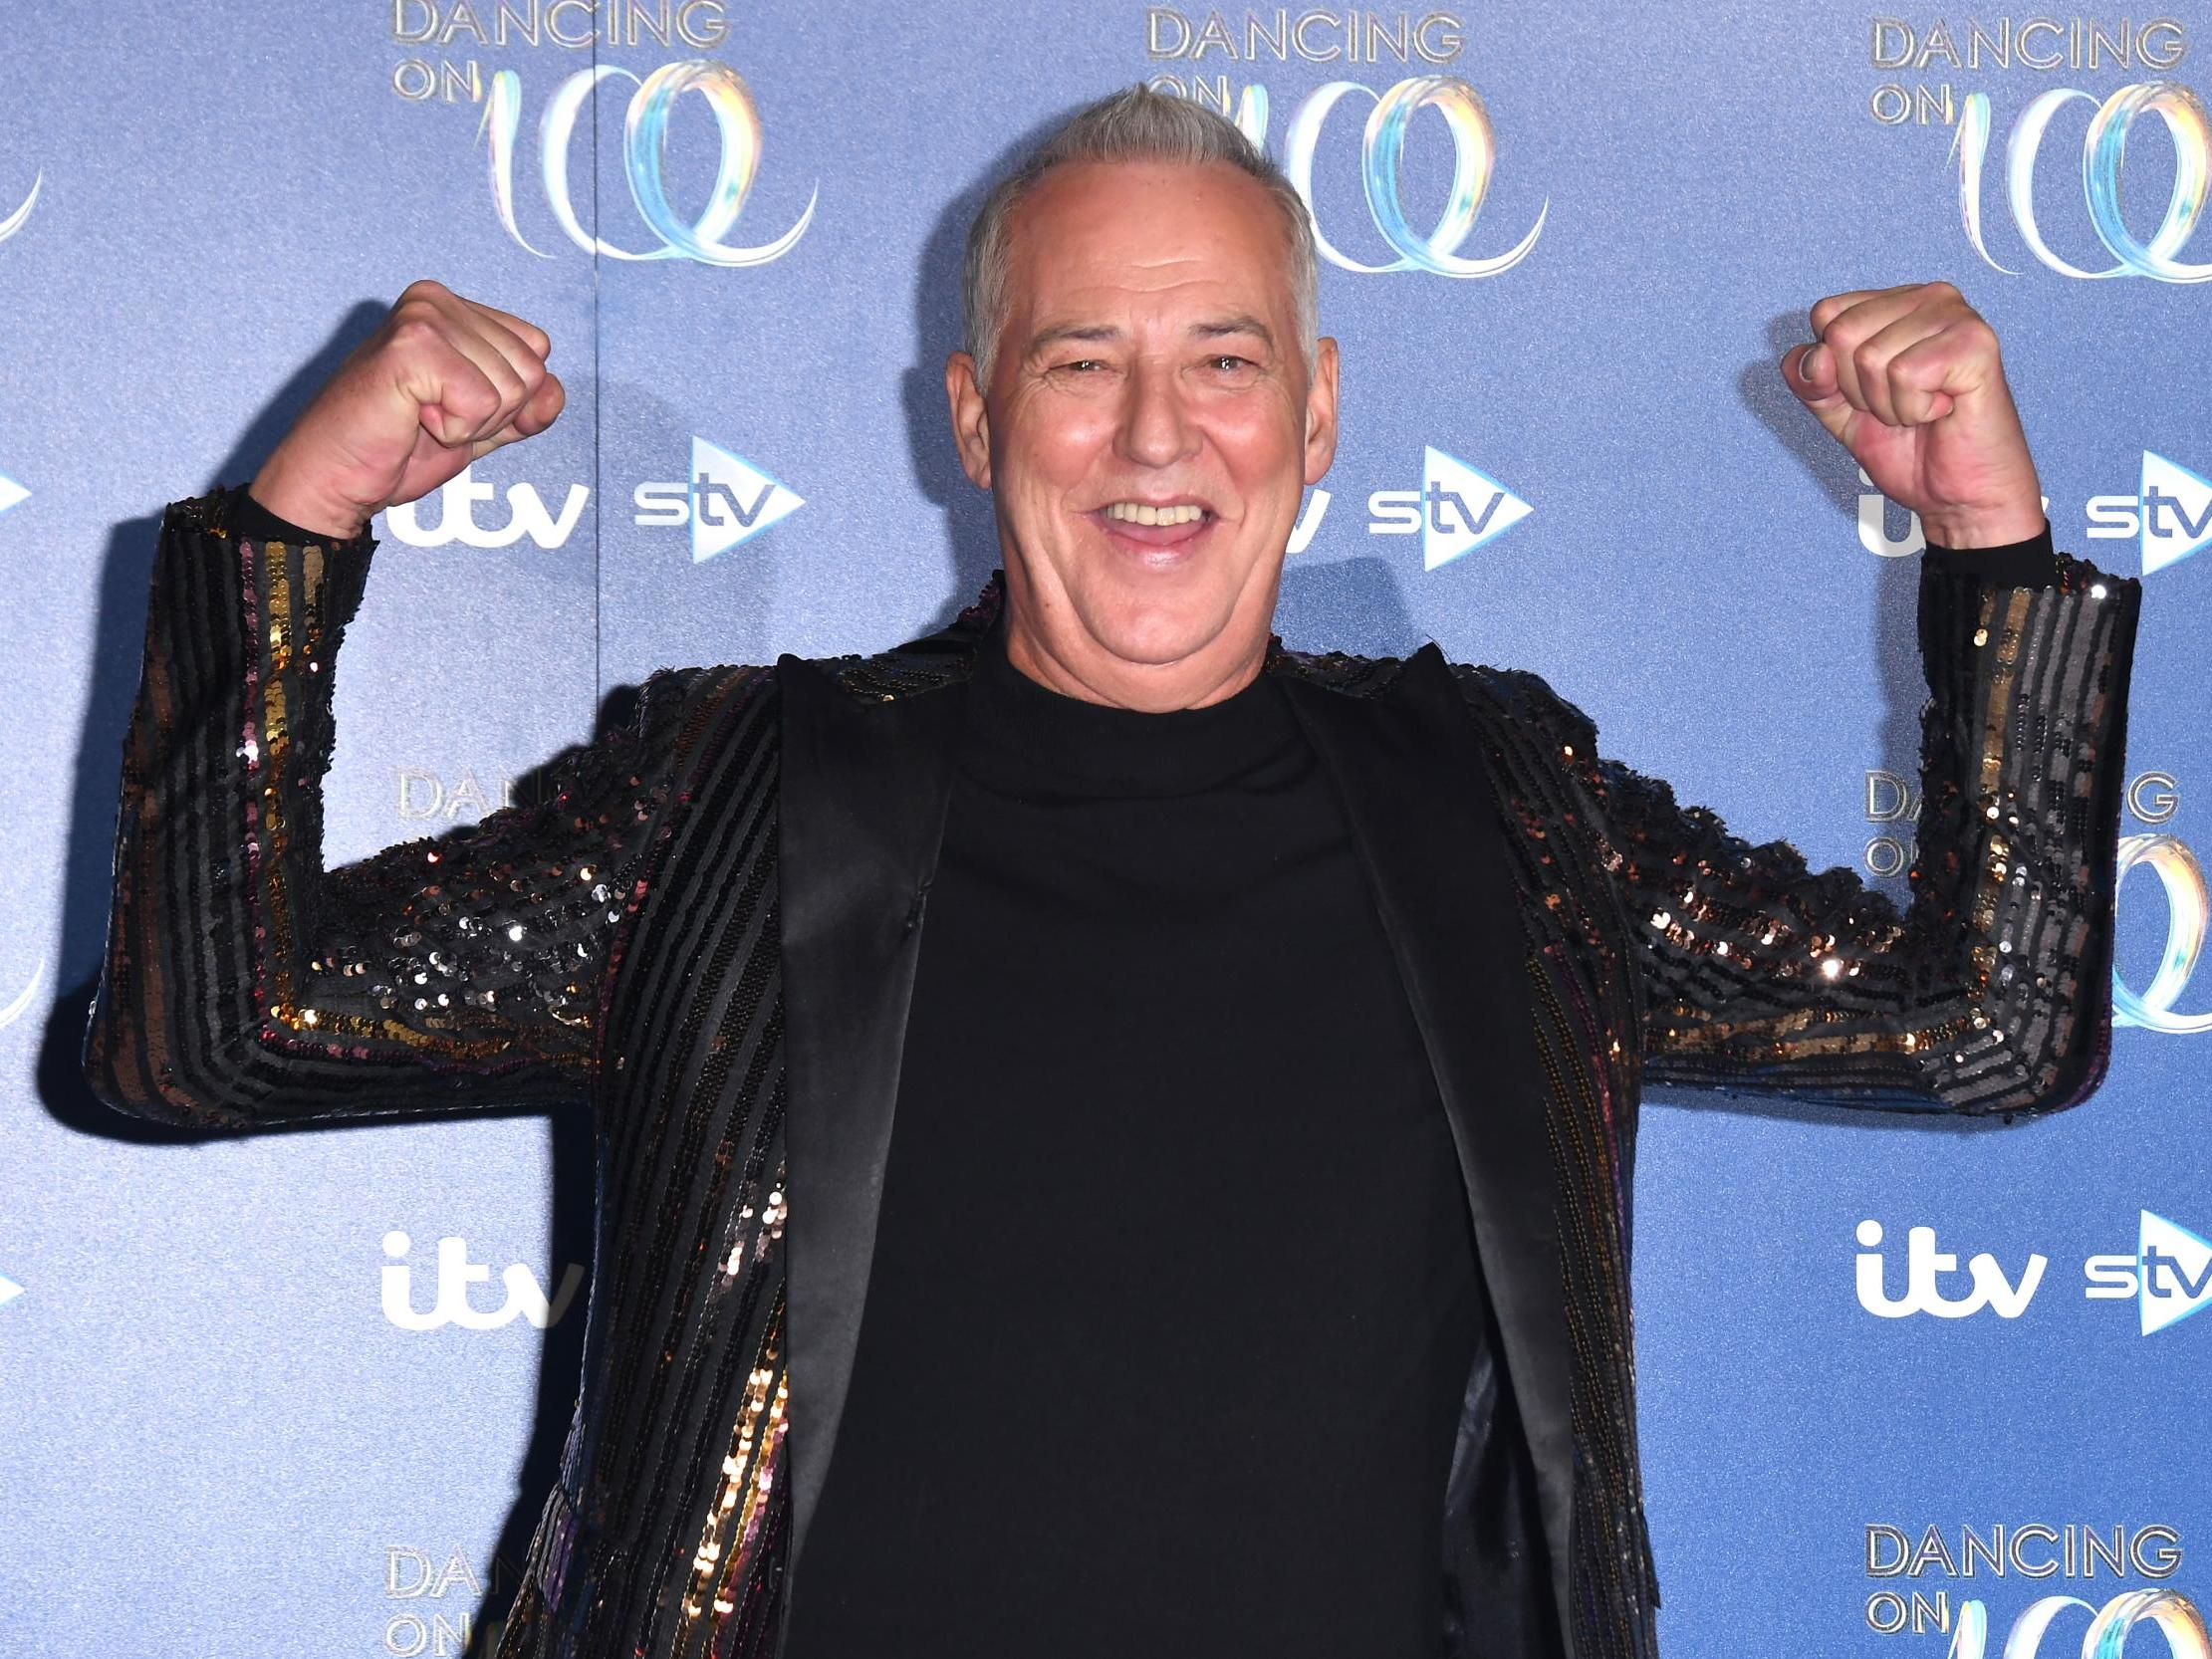 Michael Barrymore and the unsolved swimming pool death of Stuart Lubbock